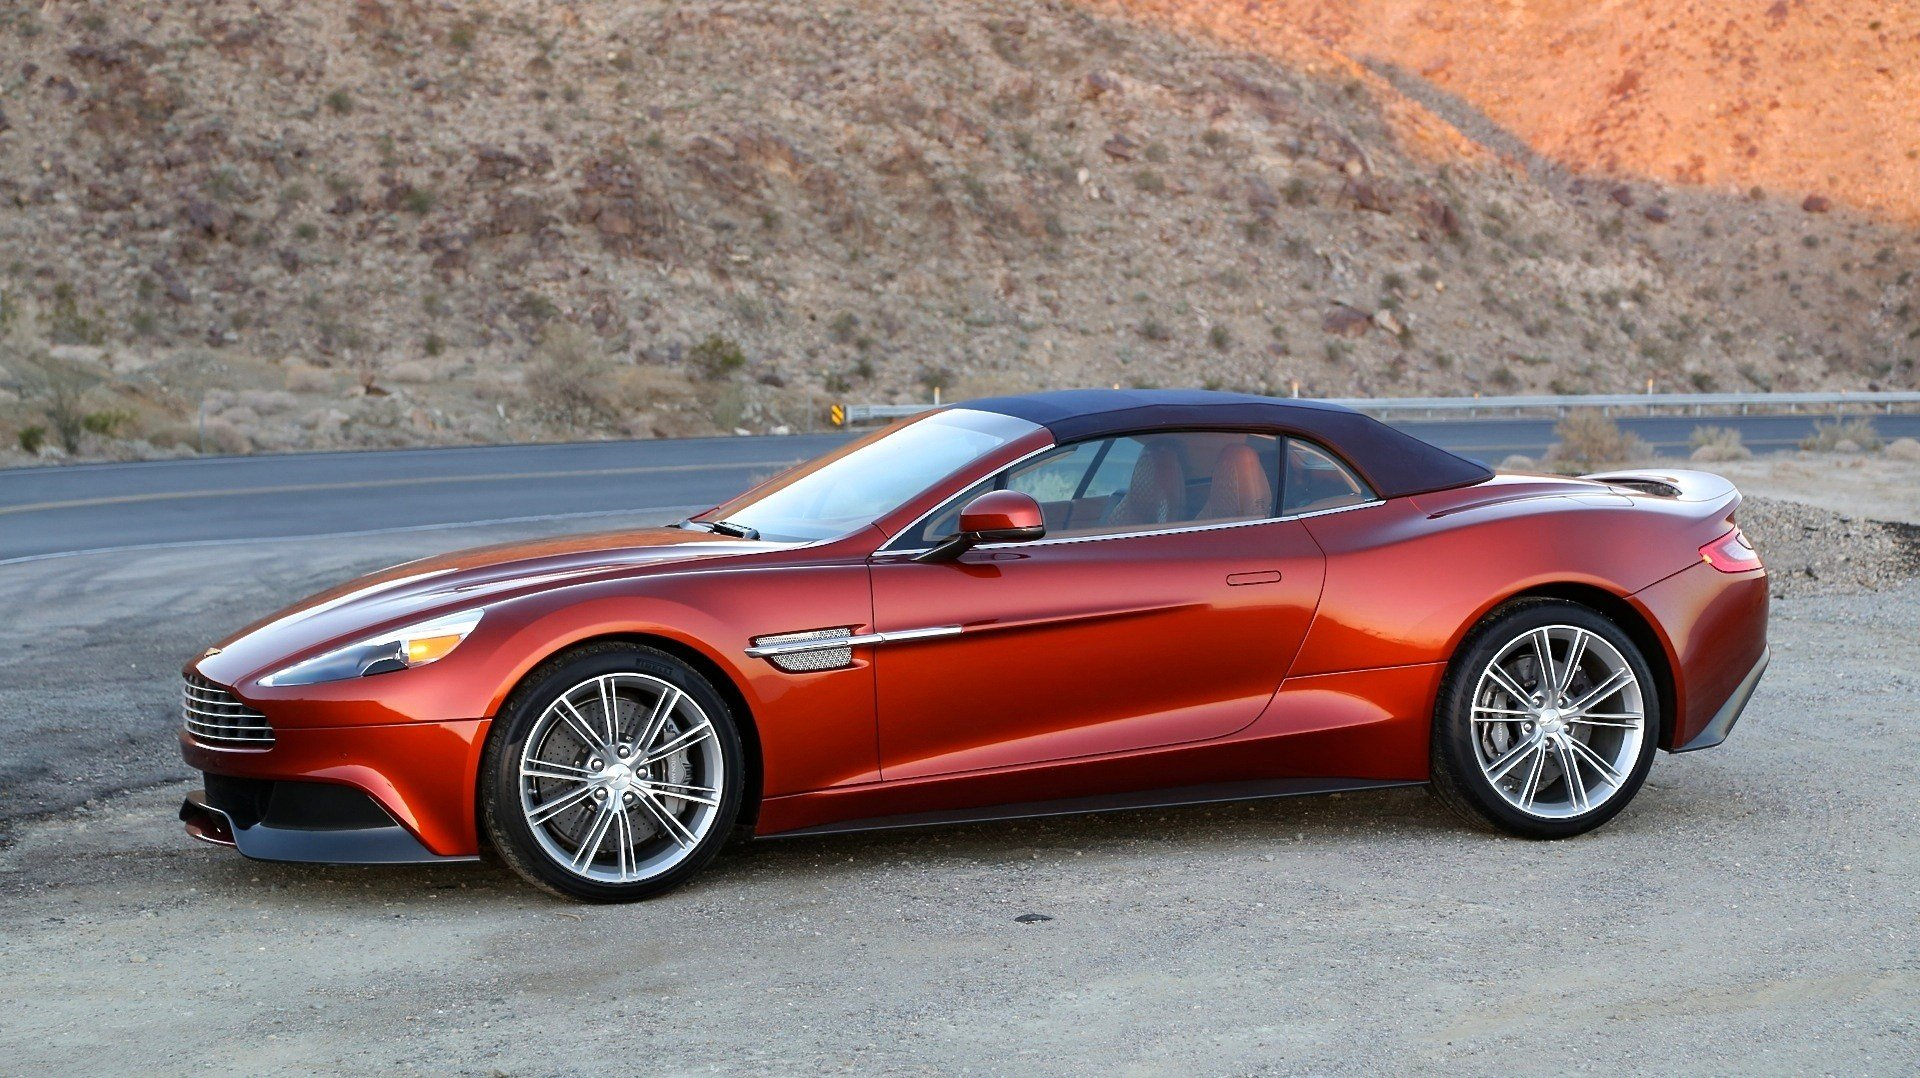 Latest 2014 Aston Martin Vanquish Review Ratings Specs Prices Free Download